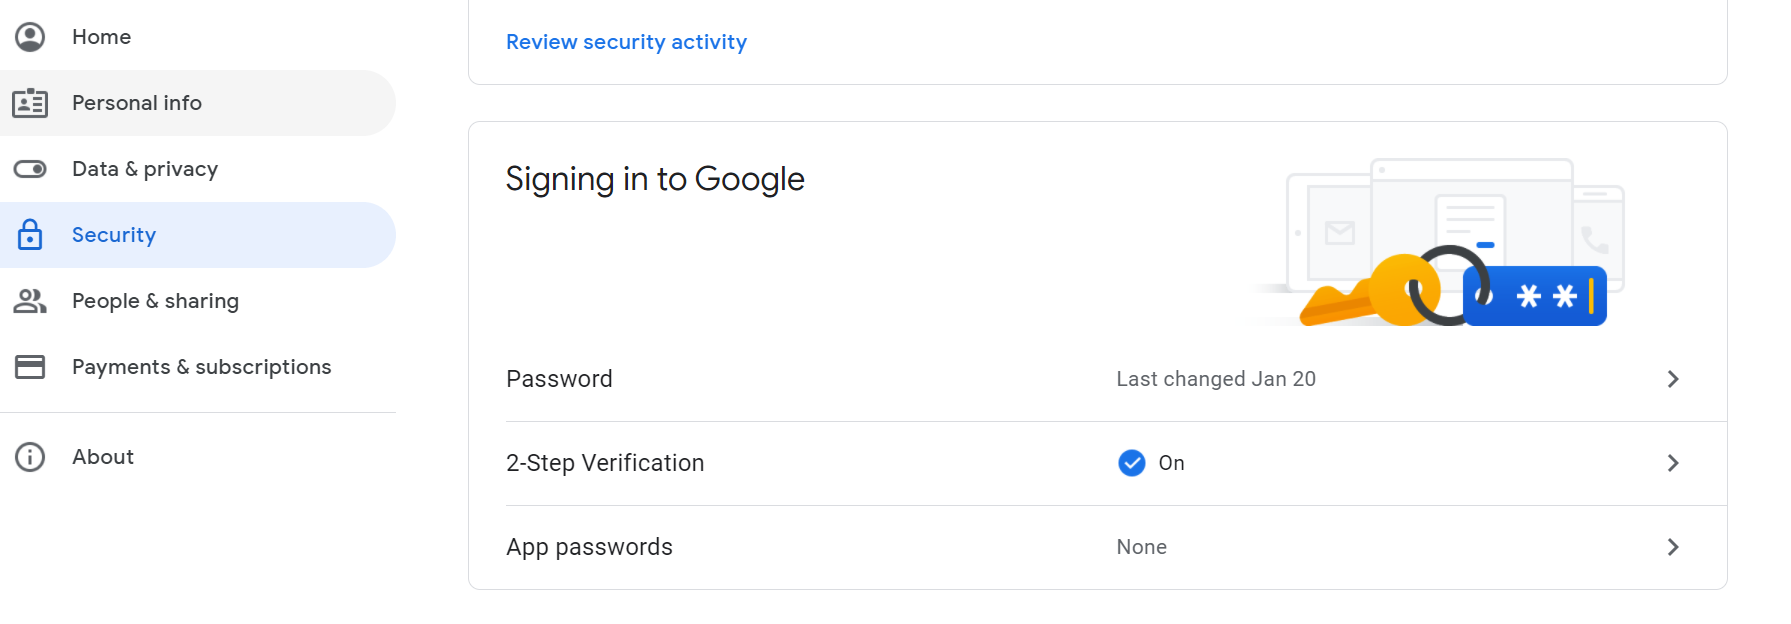 Screenshot of Google email Security settings with 2-step verification turned on